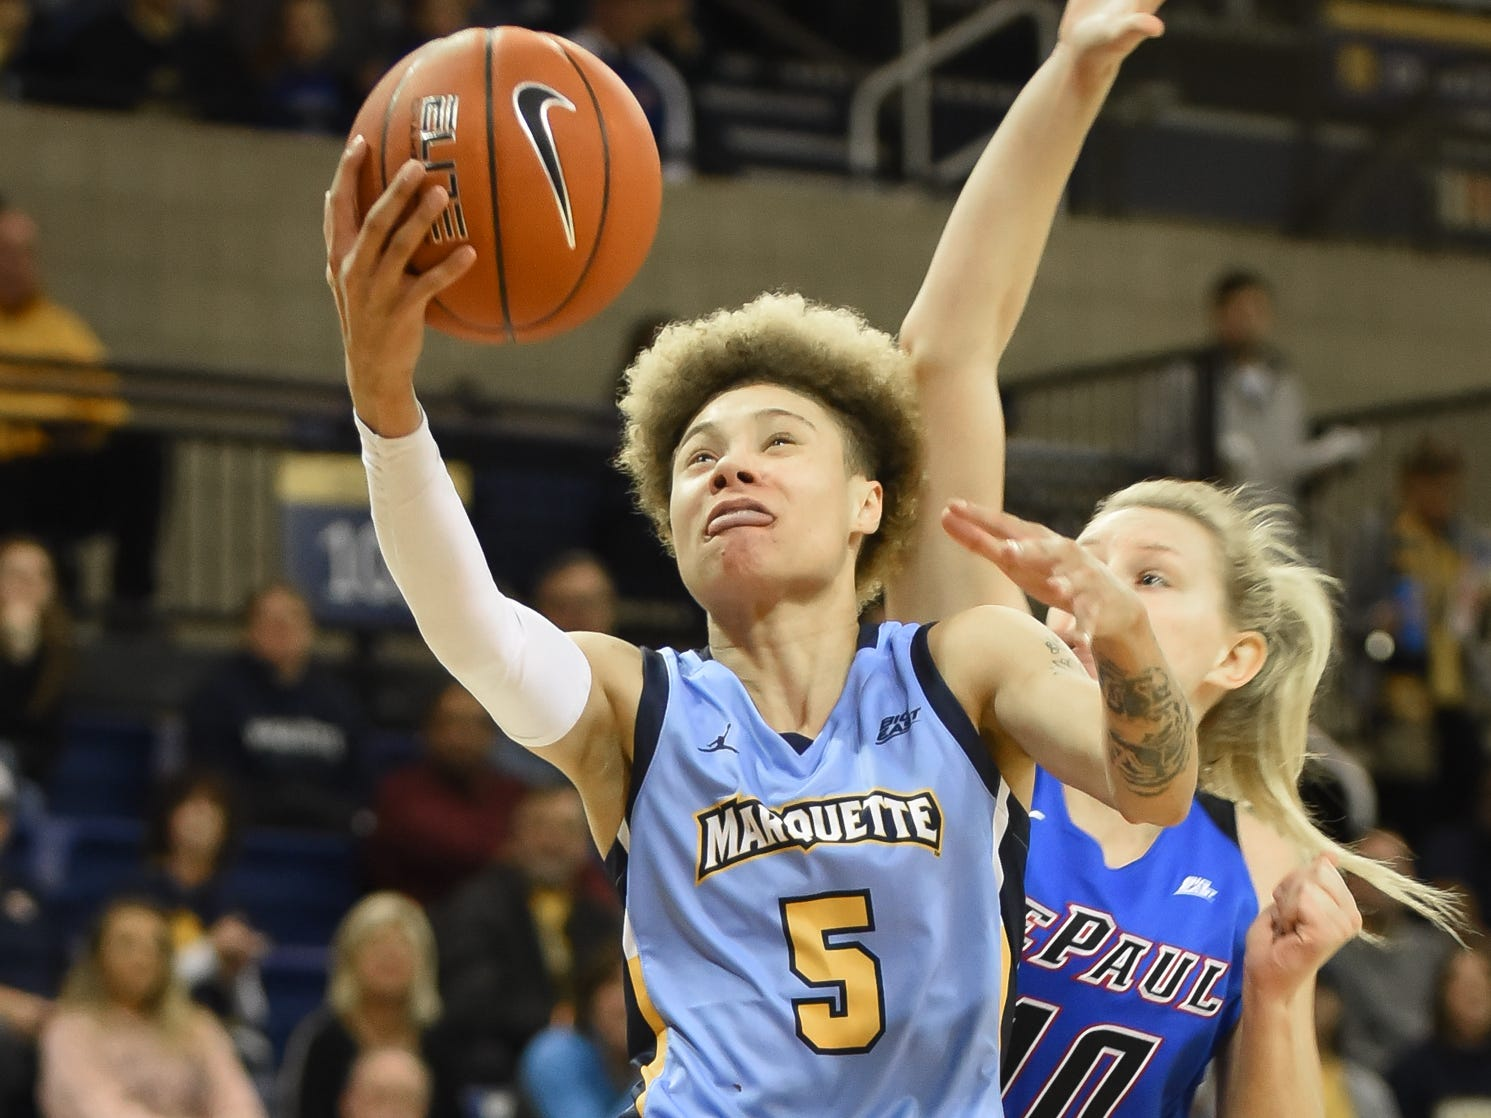 Marquette guard Natisha Hiedeman beats DePaul guard Lexi Held for a layup in a Big East Conference women's basketball game Friday, January 4, 2019, at the Al McGuire Center on the Marquette campus.